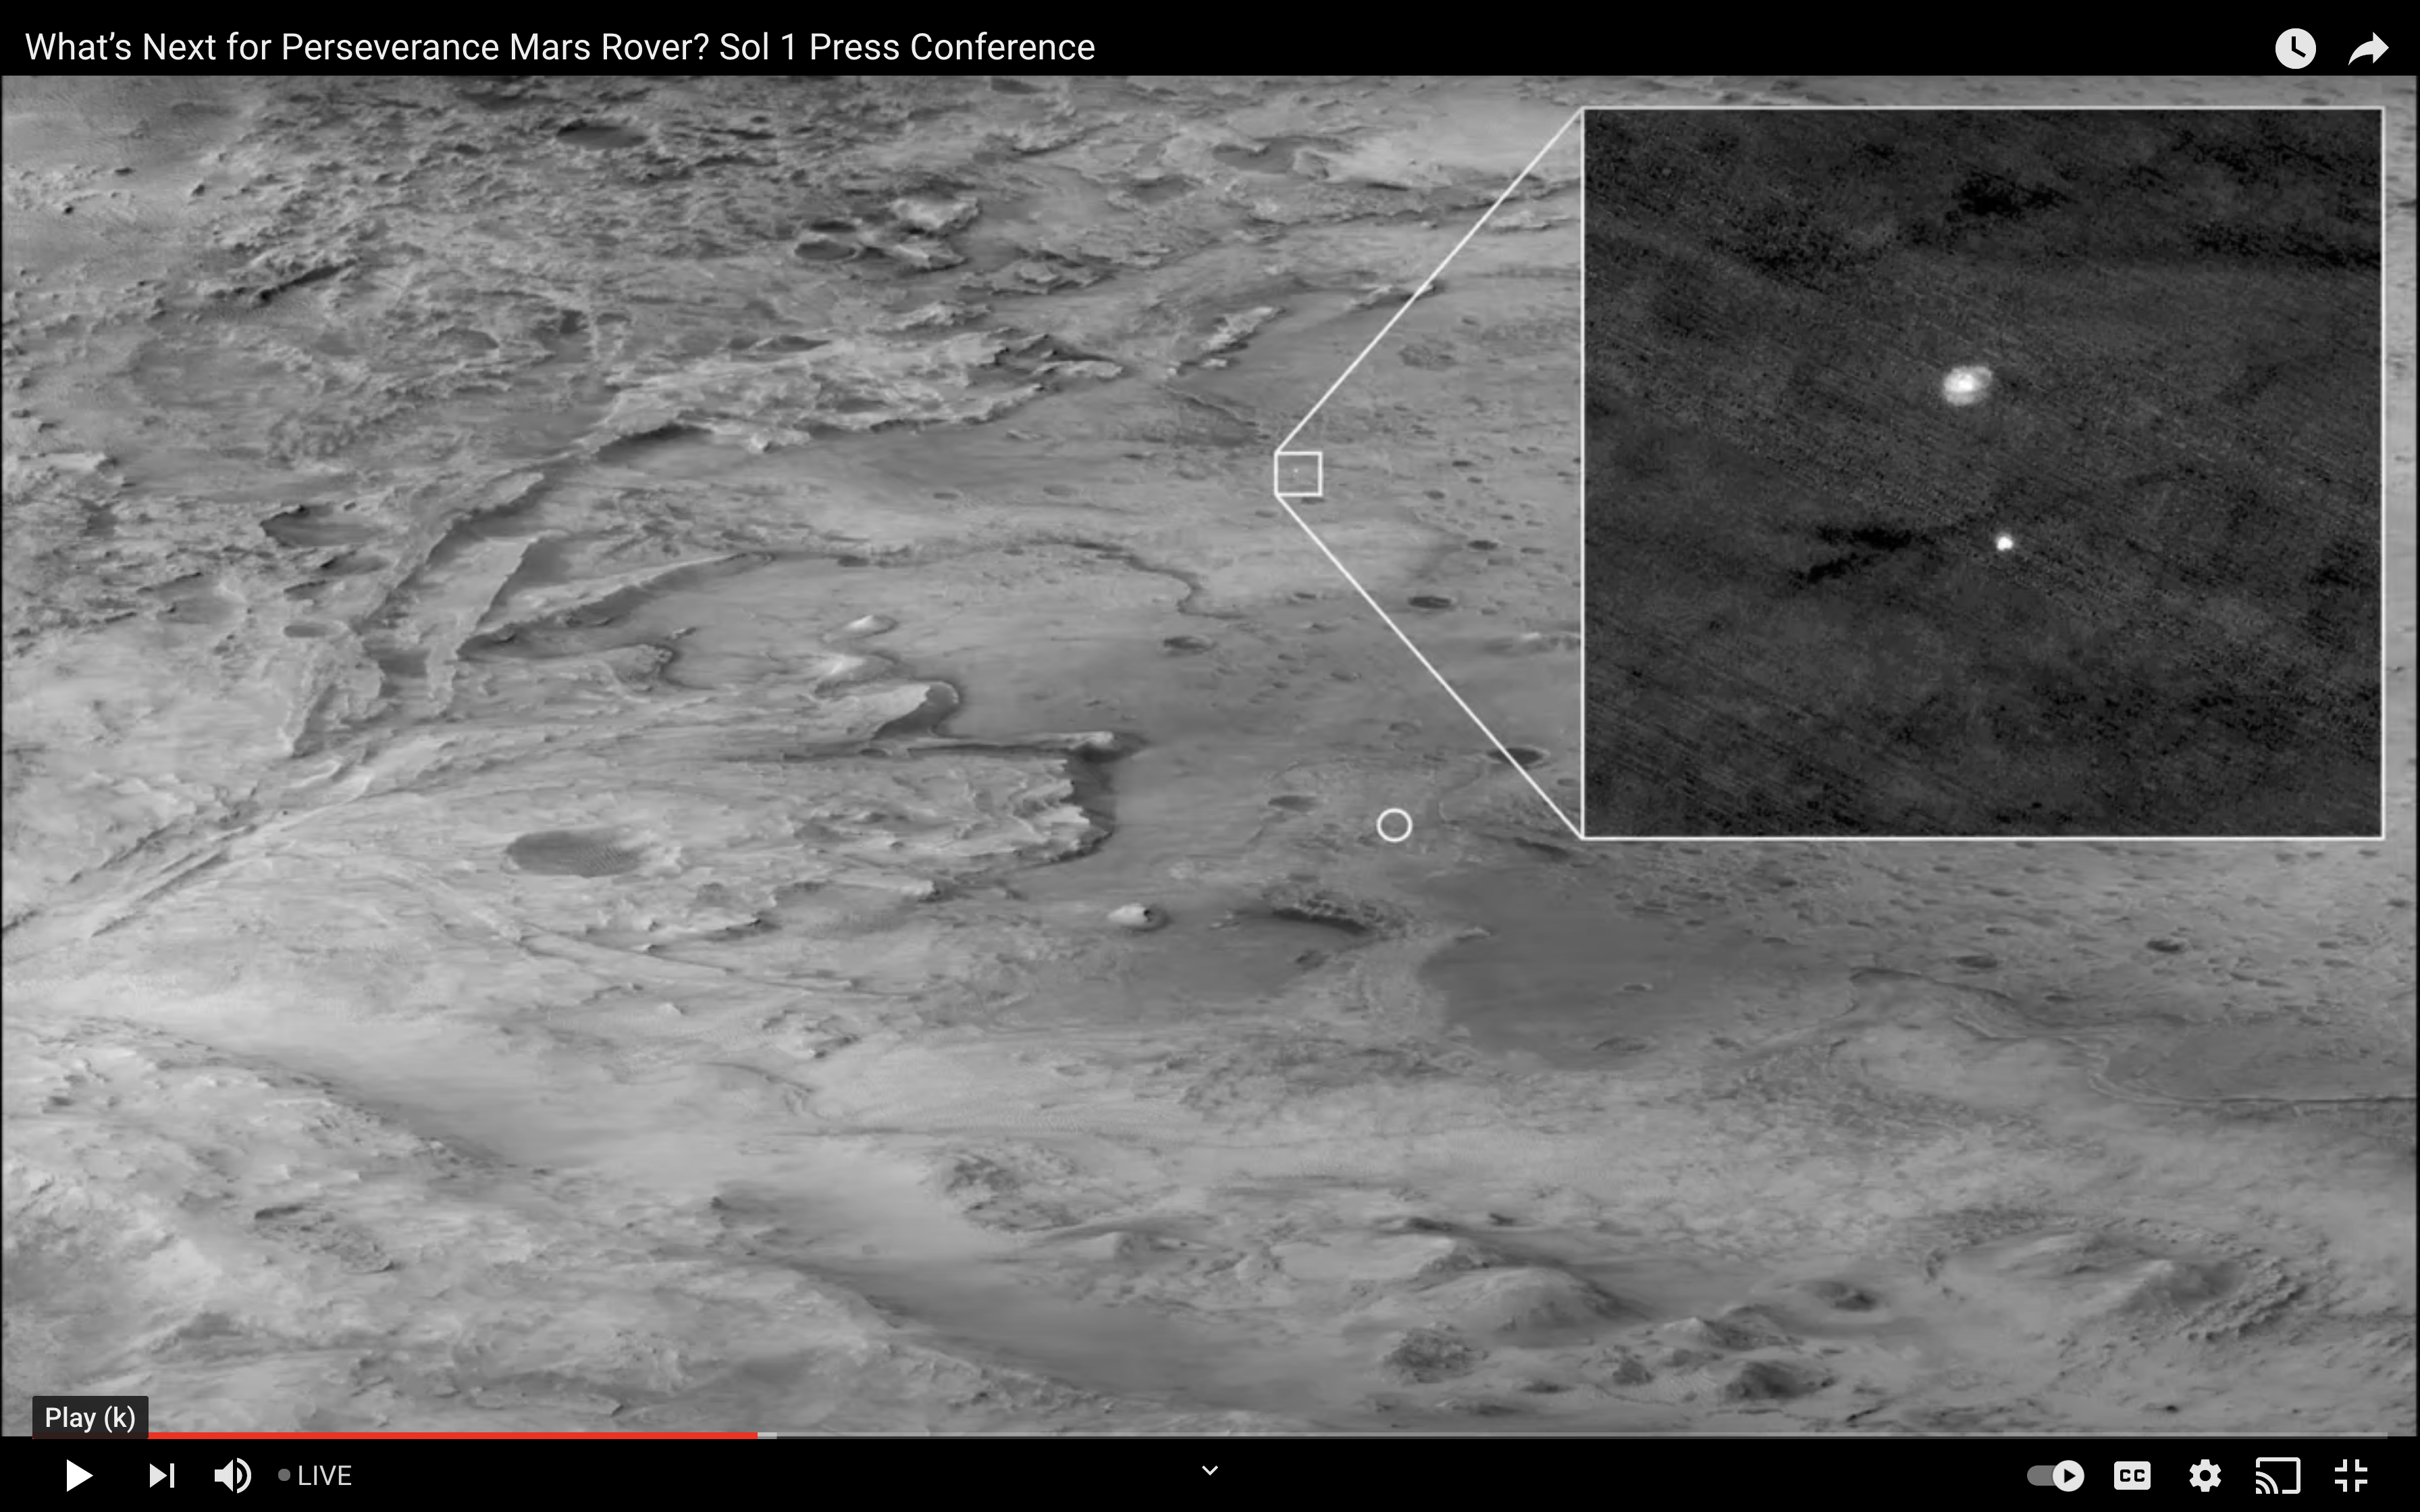 Perseverance parachute and landing system, as seen from another Martian spacecraft, the Mars Reconnaissance Orbiter. Image downloaded 2/19/21